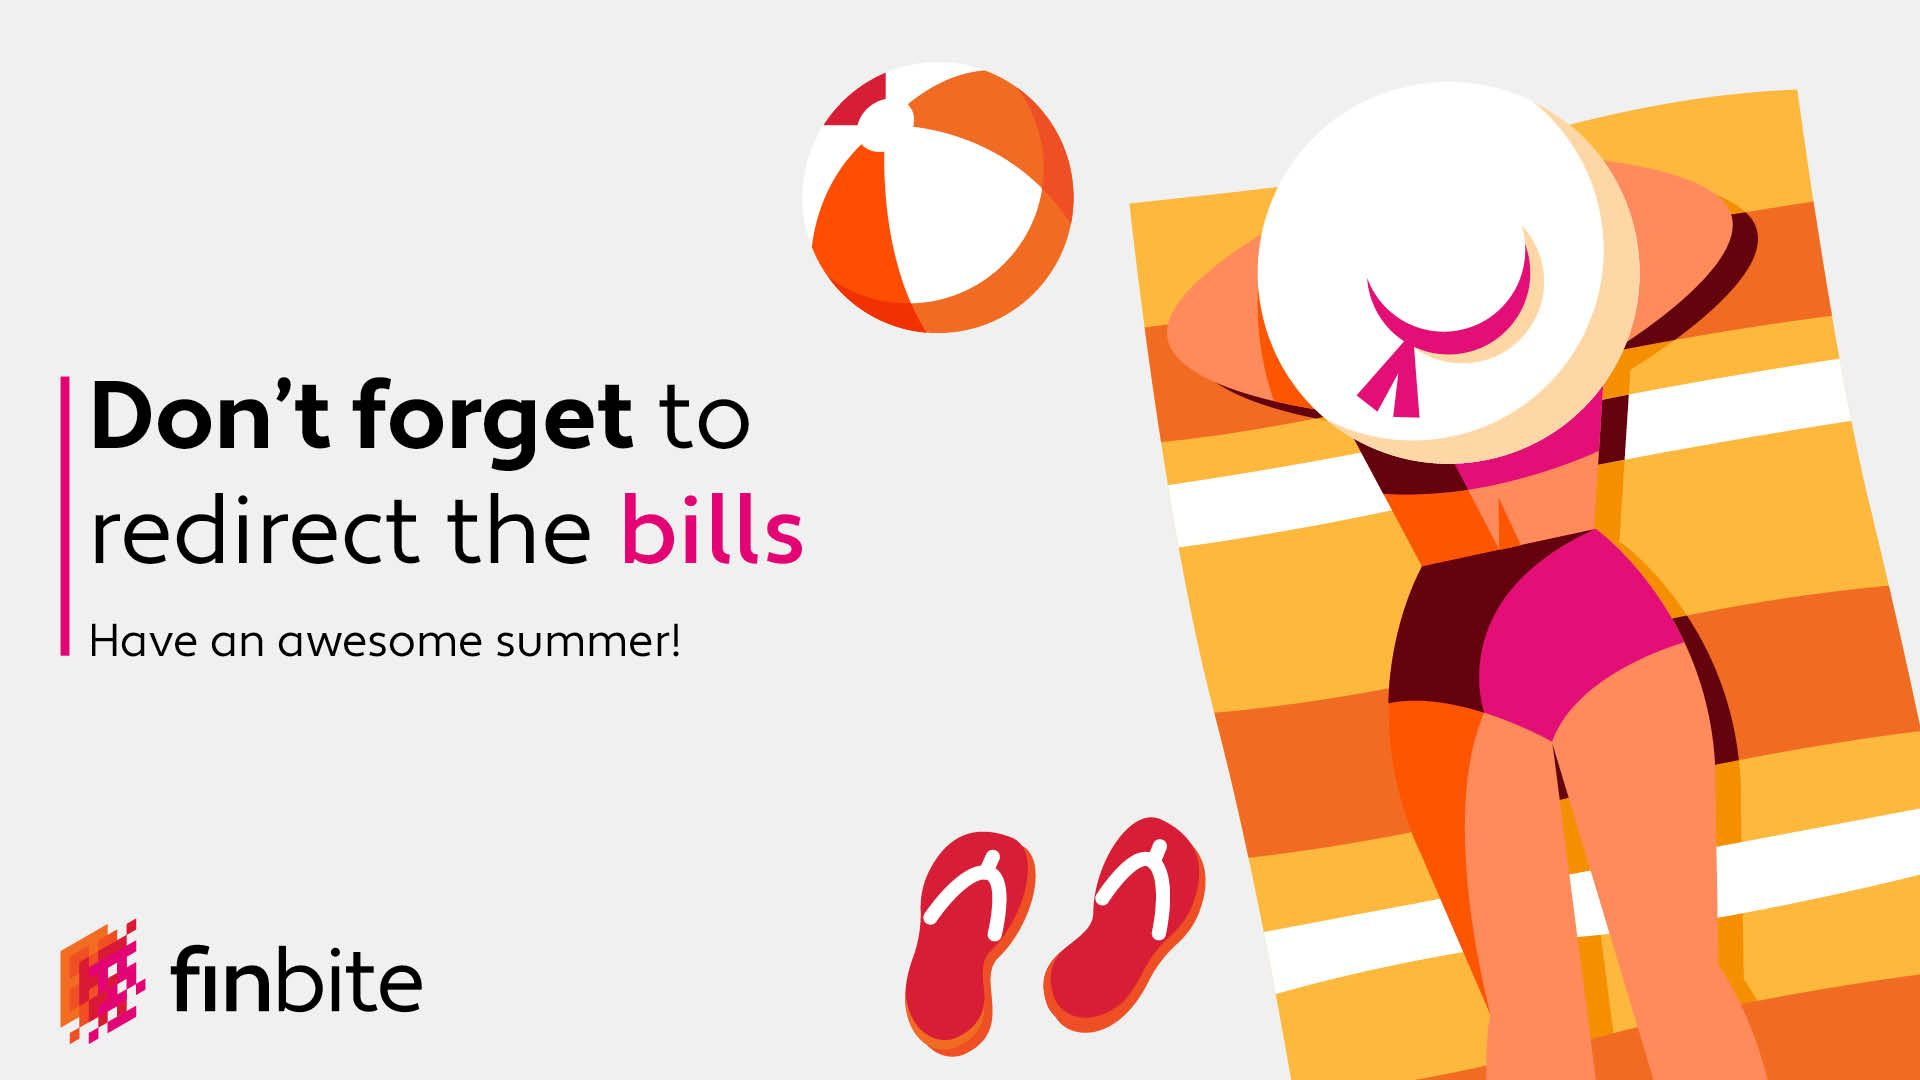 Business doesn't stop during summer – add a substitute for the holidays